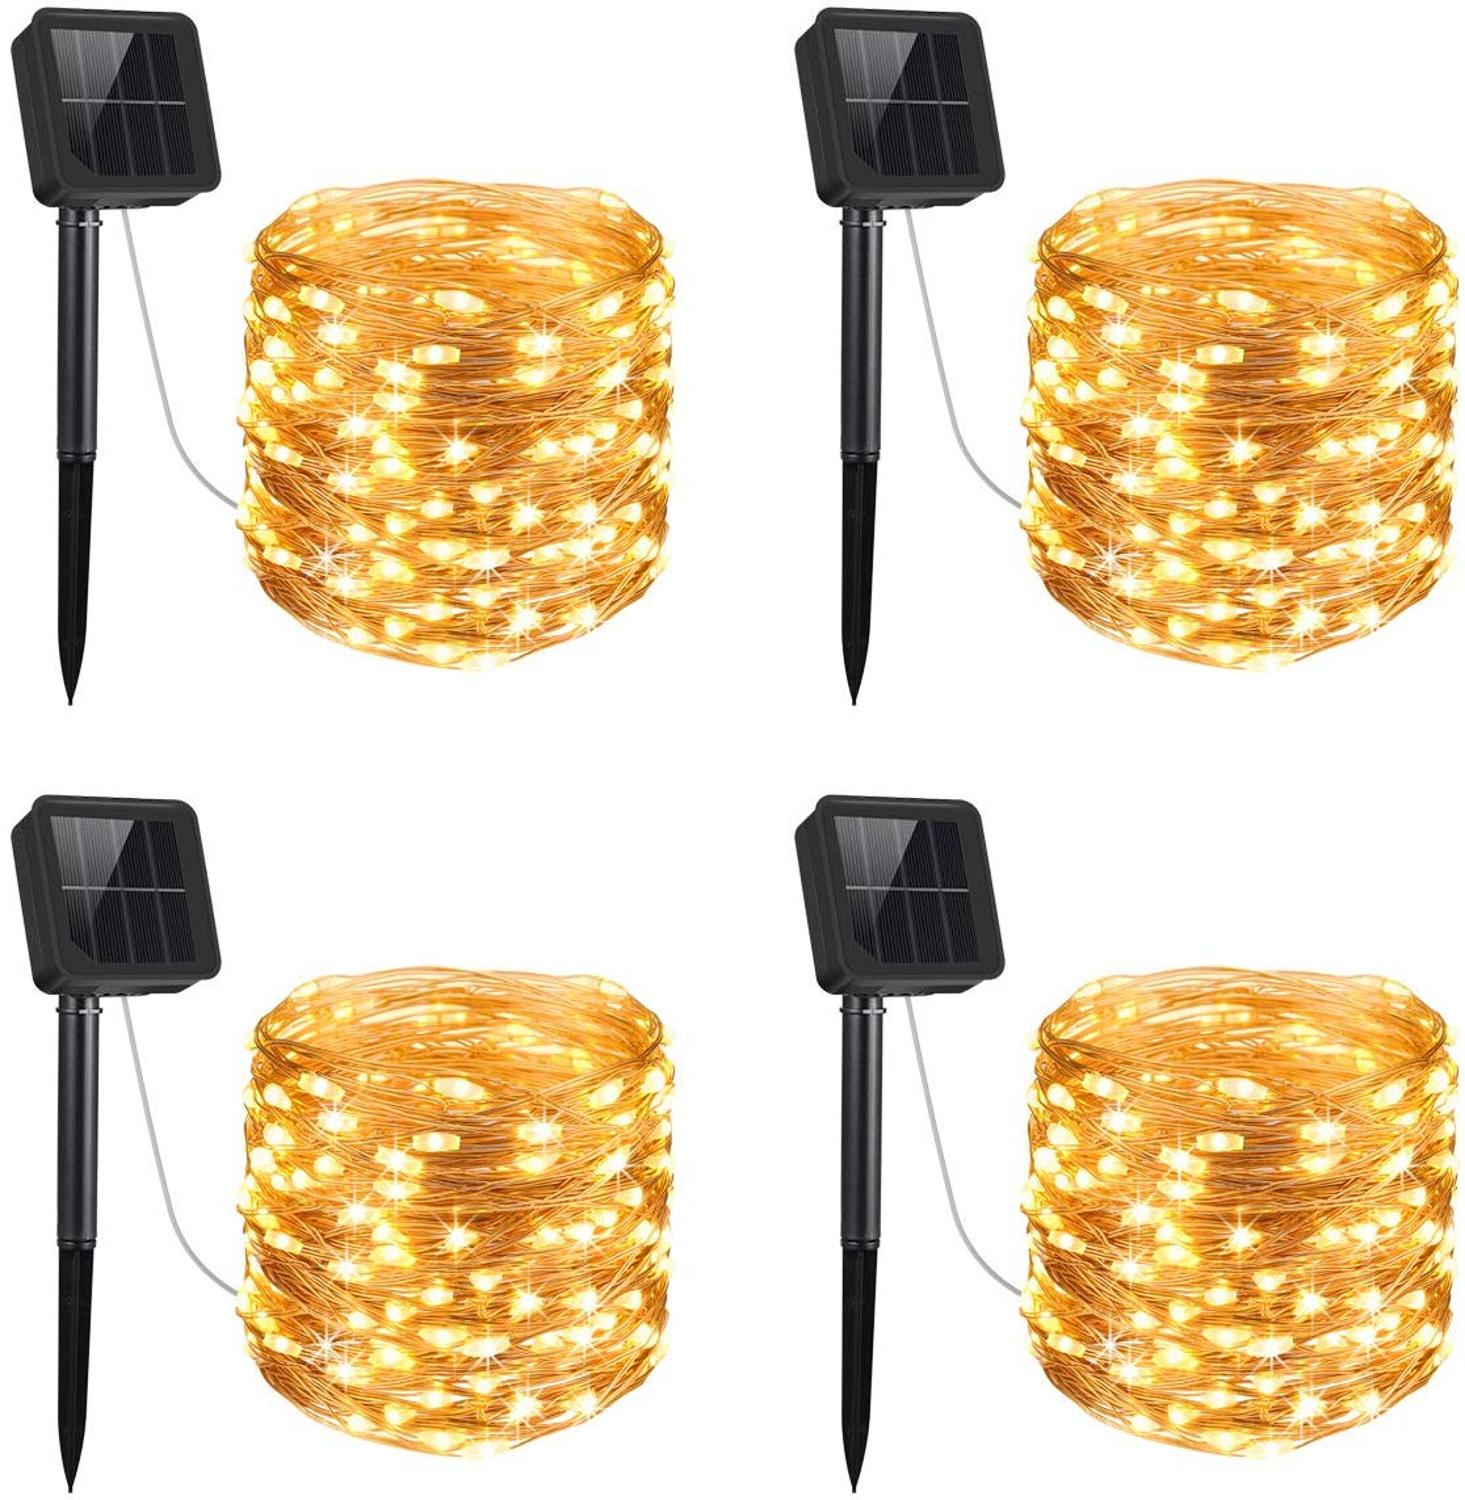 Solar String Lights, 4 Pack 16 Feet 50 LED Outdoor String Lights, Waterproof Solar Decoration Lights For Gardens, Patios, Homes,